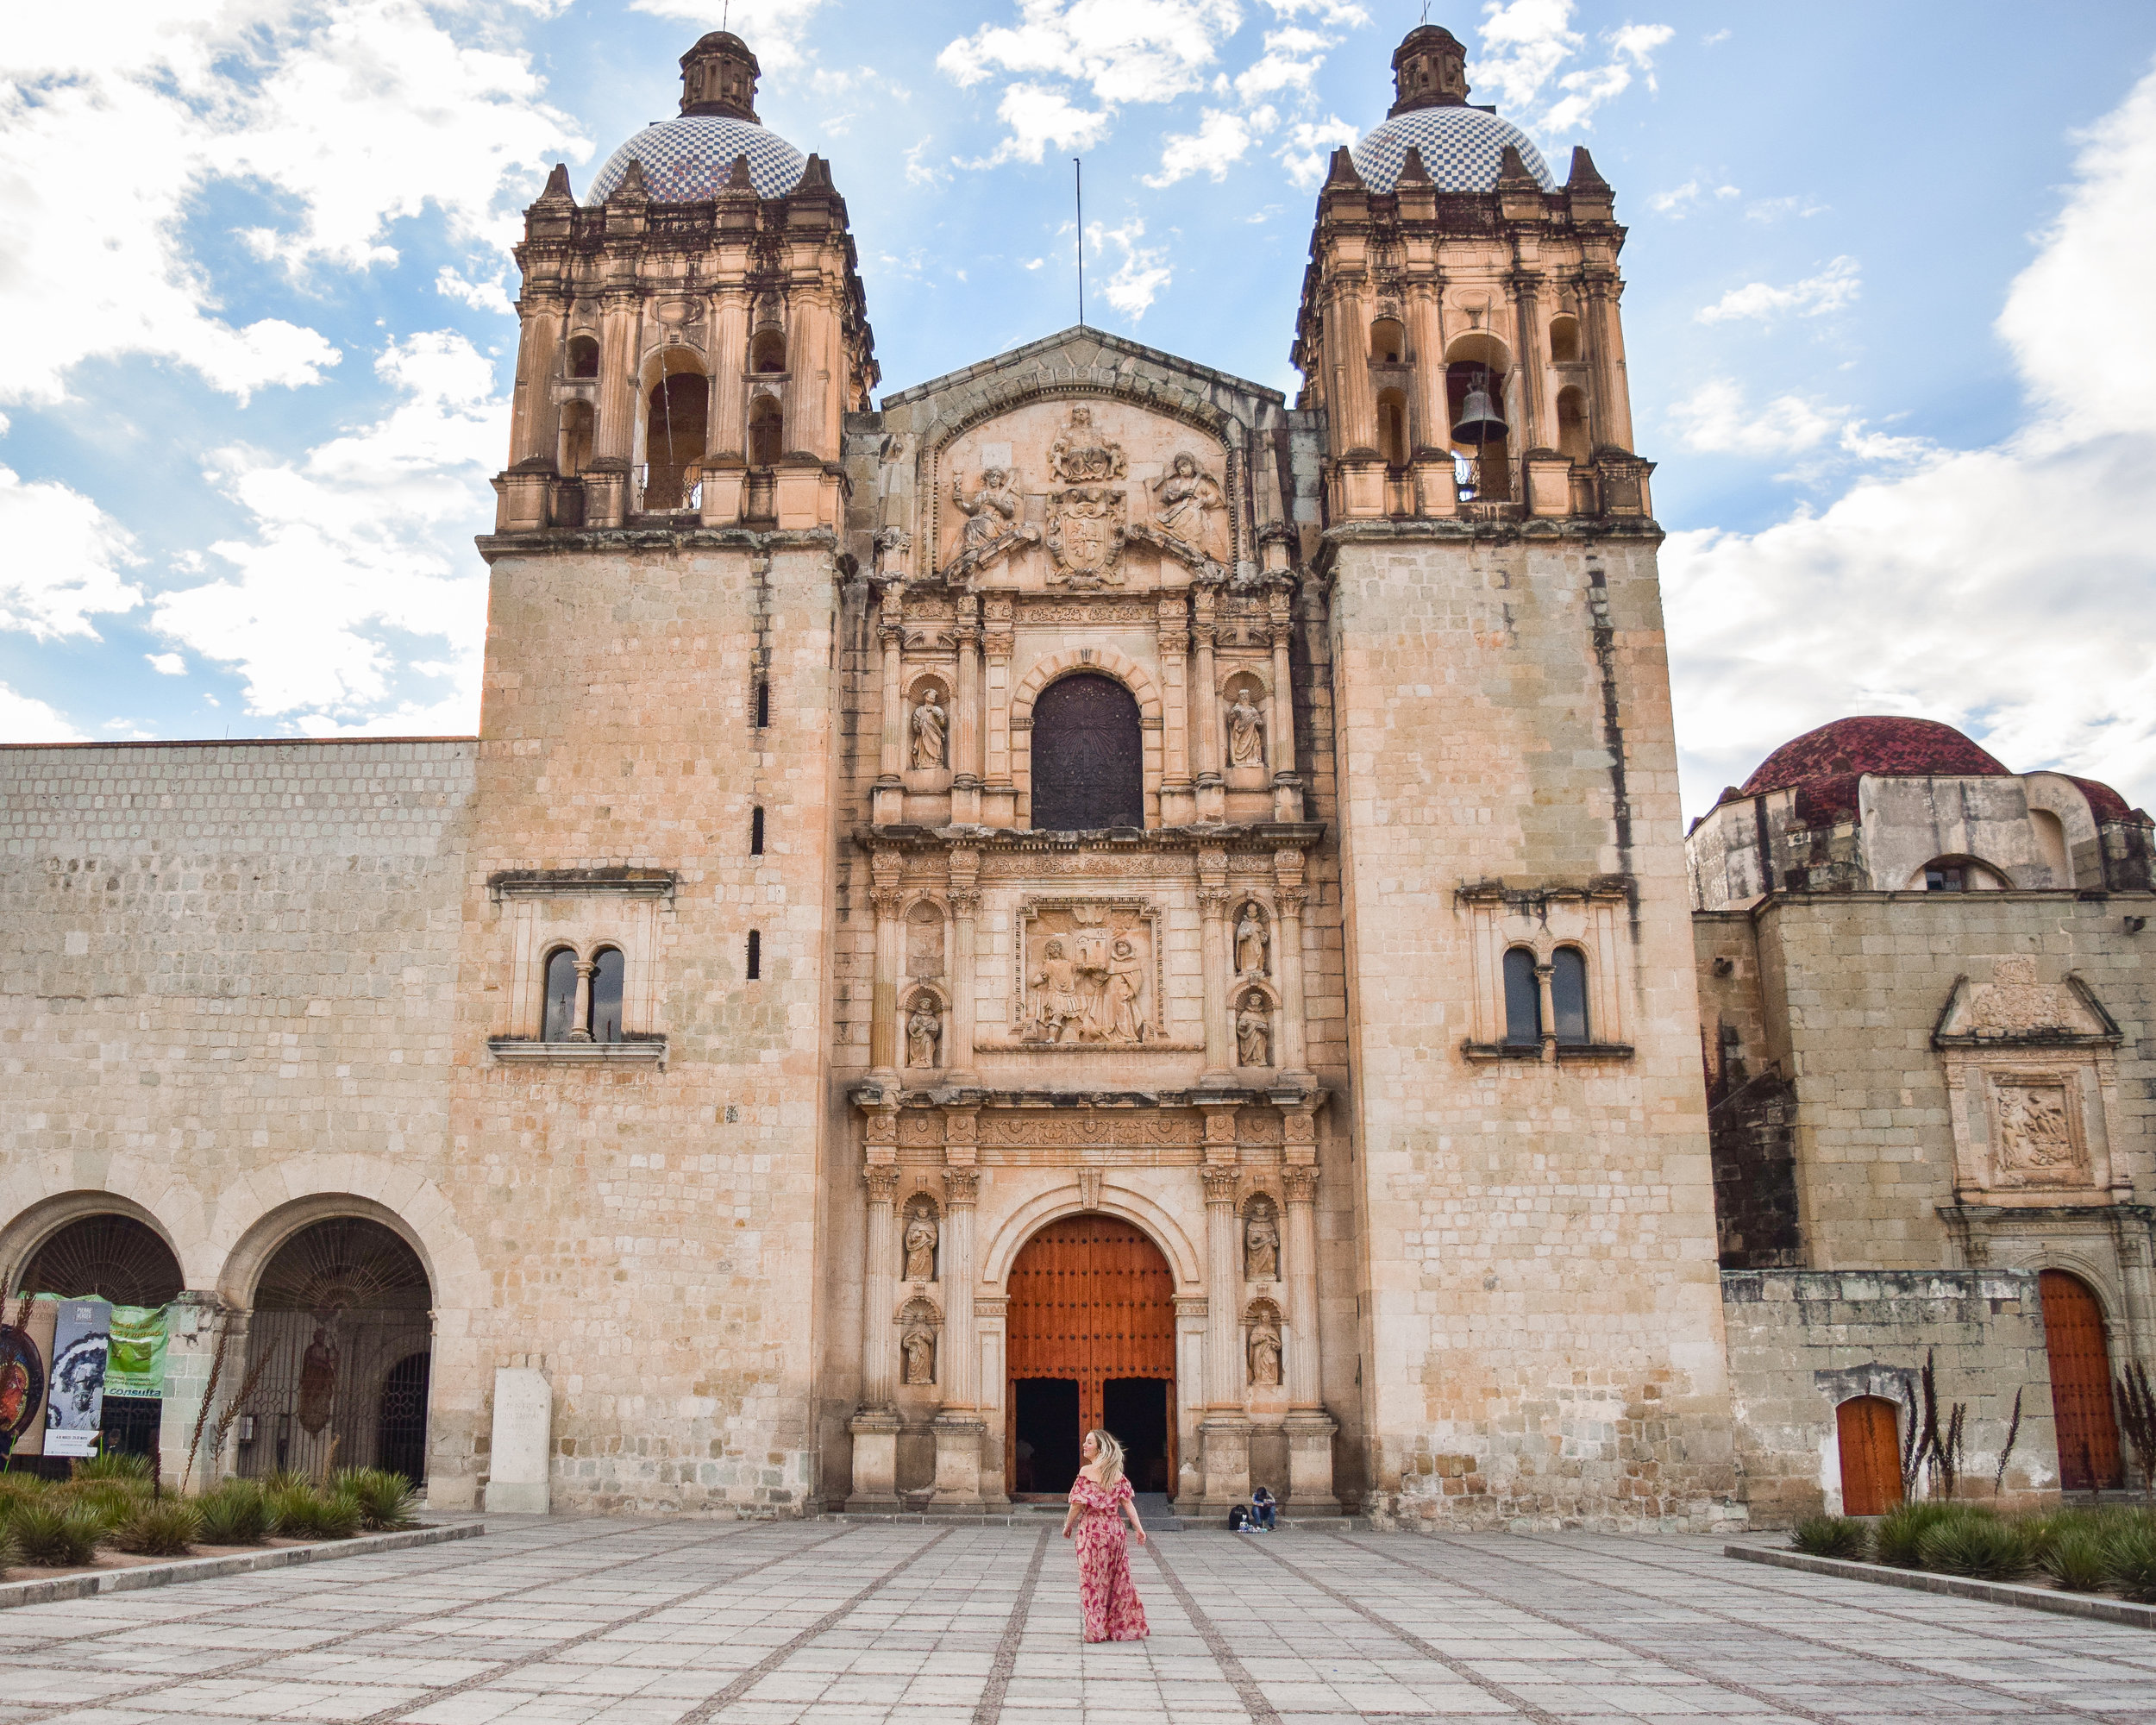 This gorgeous and altogether impressive cathedral is the main centerpiece of the town, and is flooded with visitors everyday.